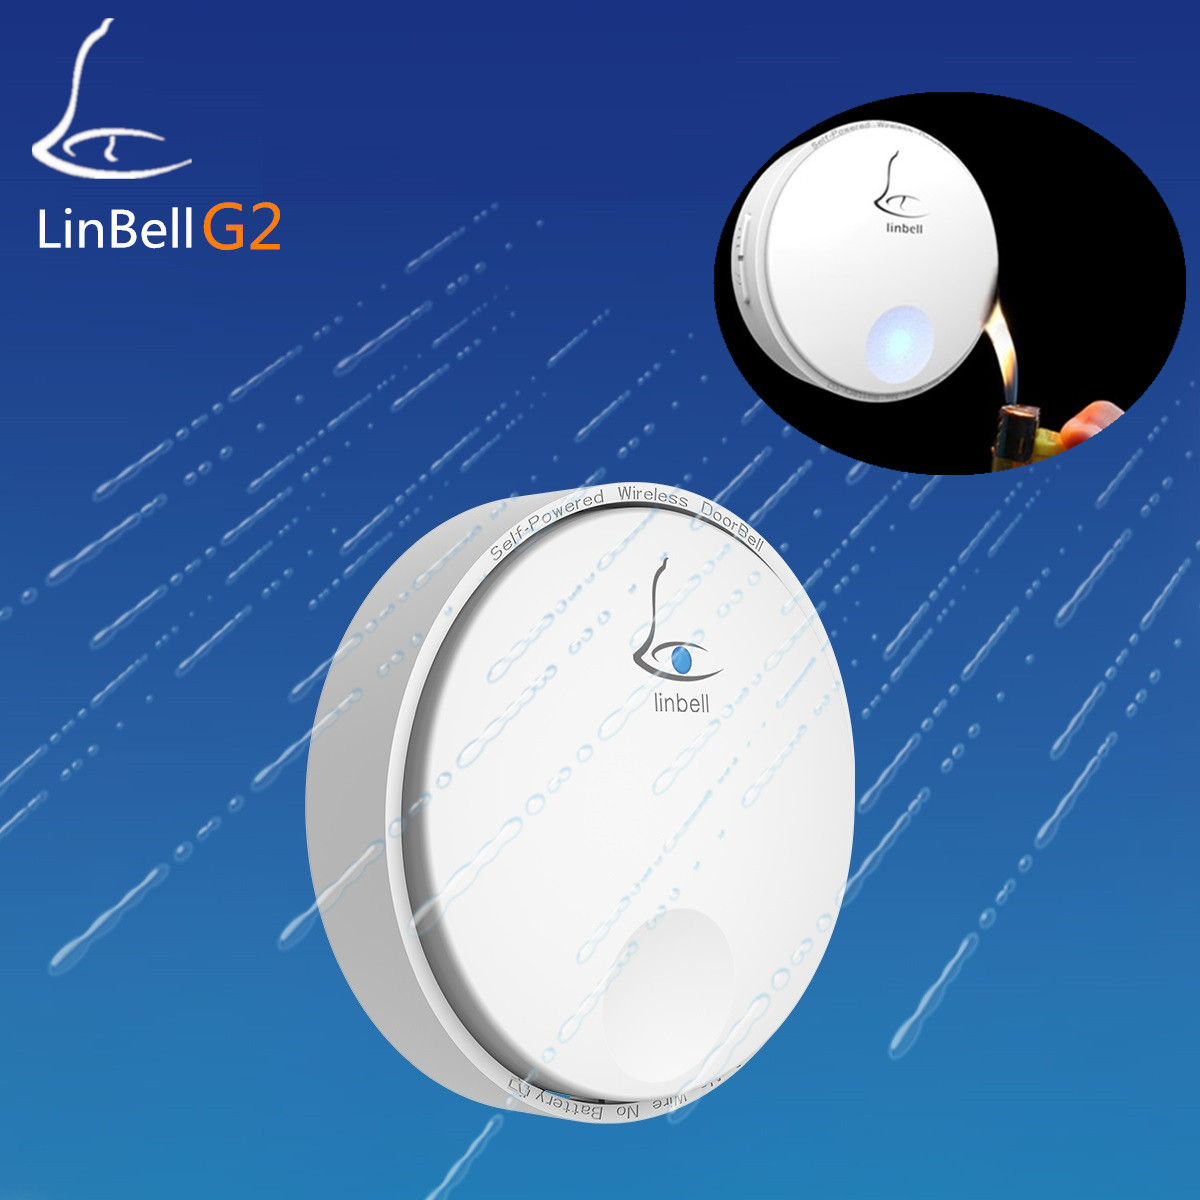 Linptech Linbell G2 door ring with 38 timbre ringstones door bell wireless 433mhz waterproof remote doorbell with 2 buttons linptech g1 1 doorbell button 2 remote wireless door bells smart mp3 ring doorbell electric waterproof home call ring bell